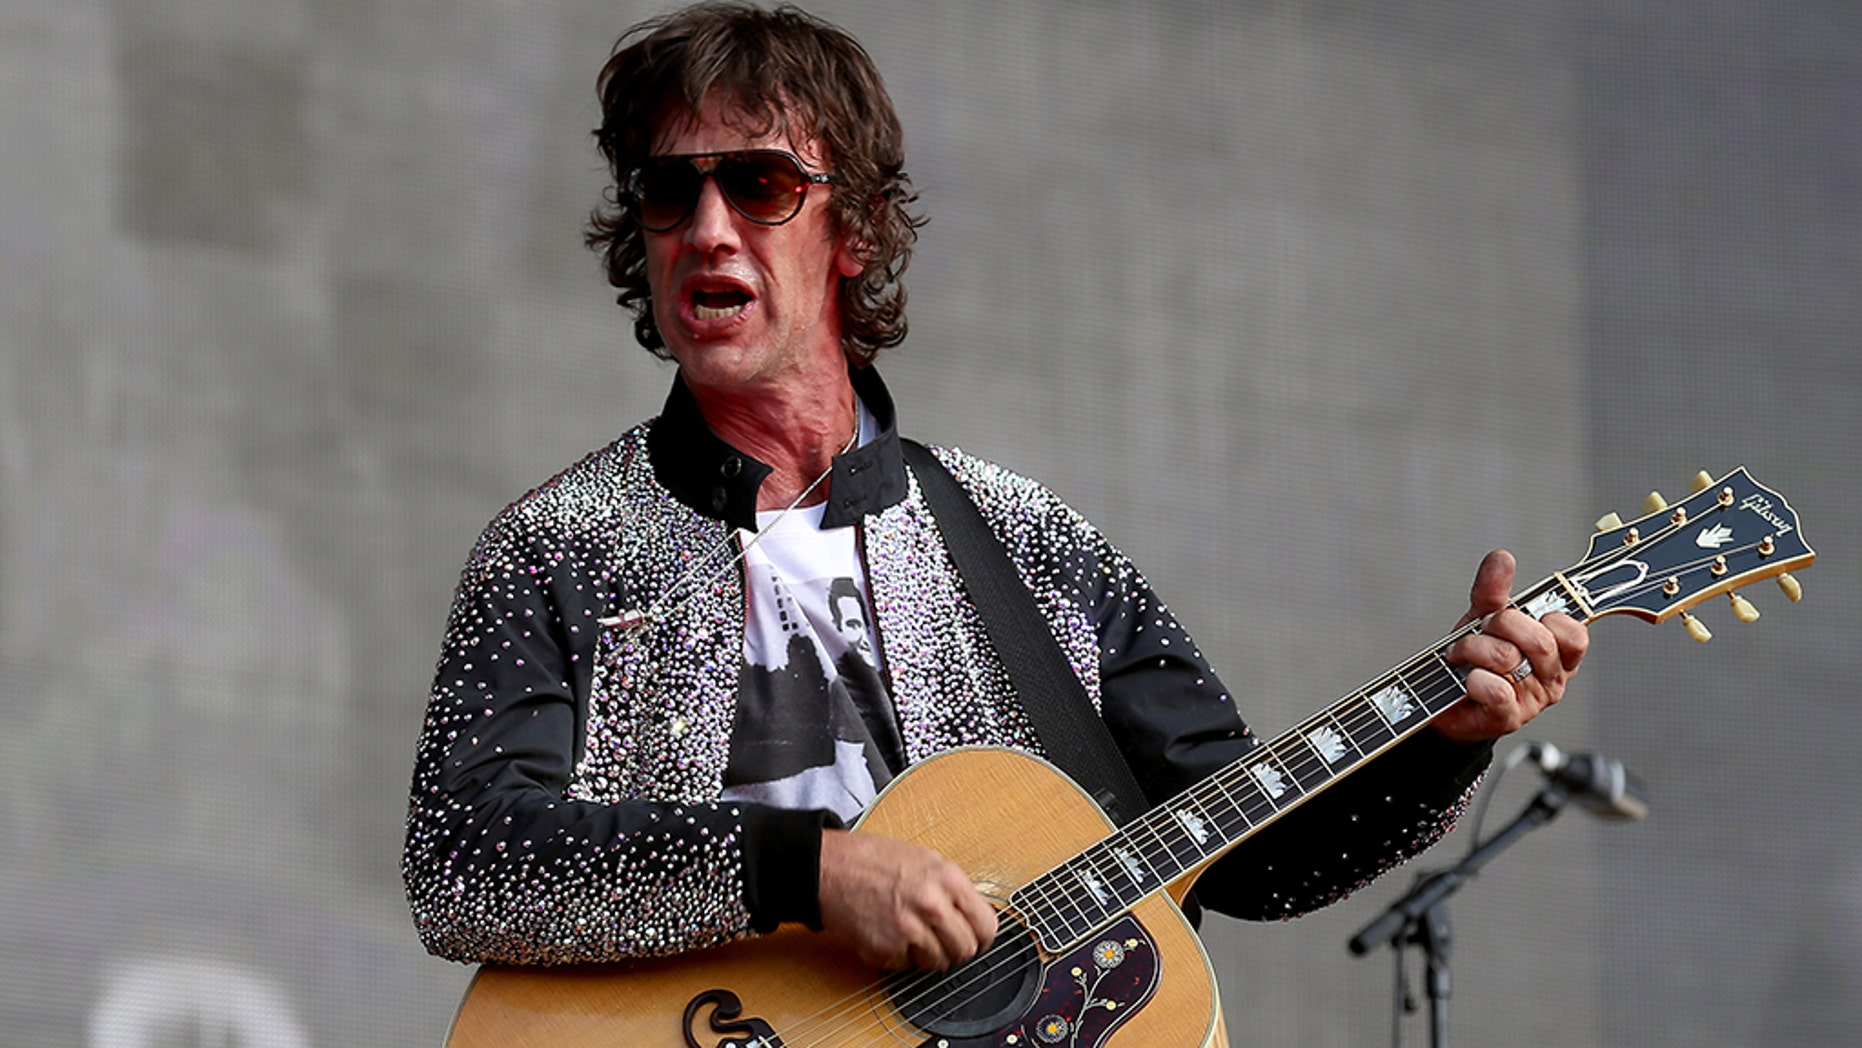 Richard Ashcroft performs live on The Great Oak Stage during Barclaycard present British Summer Time Hyde Park at Hyde Park on July 6, 2018 in London, England.